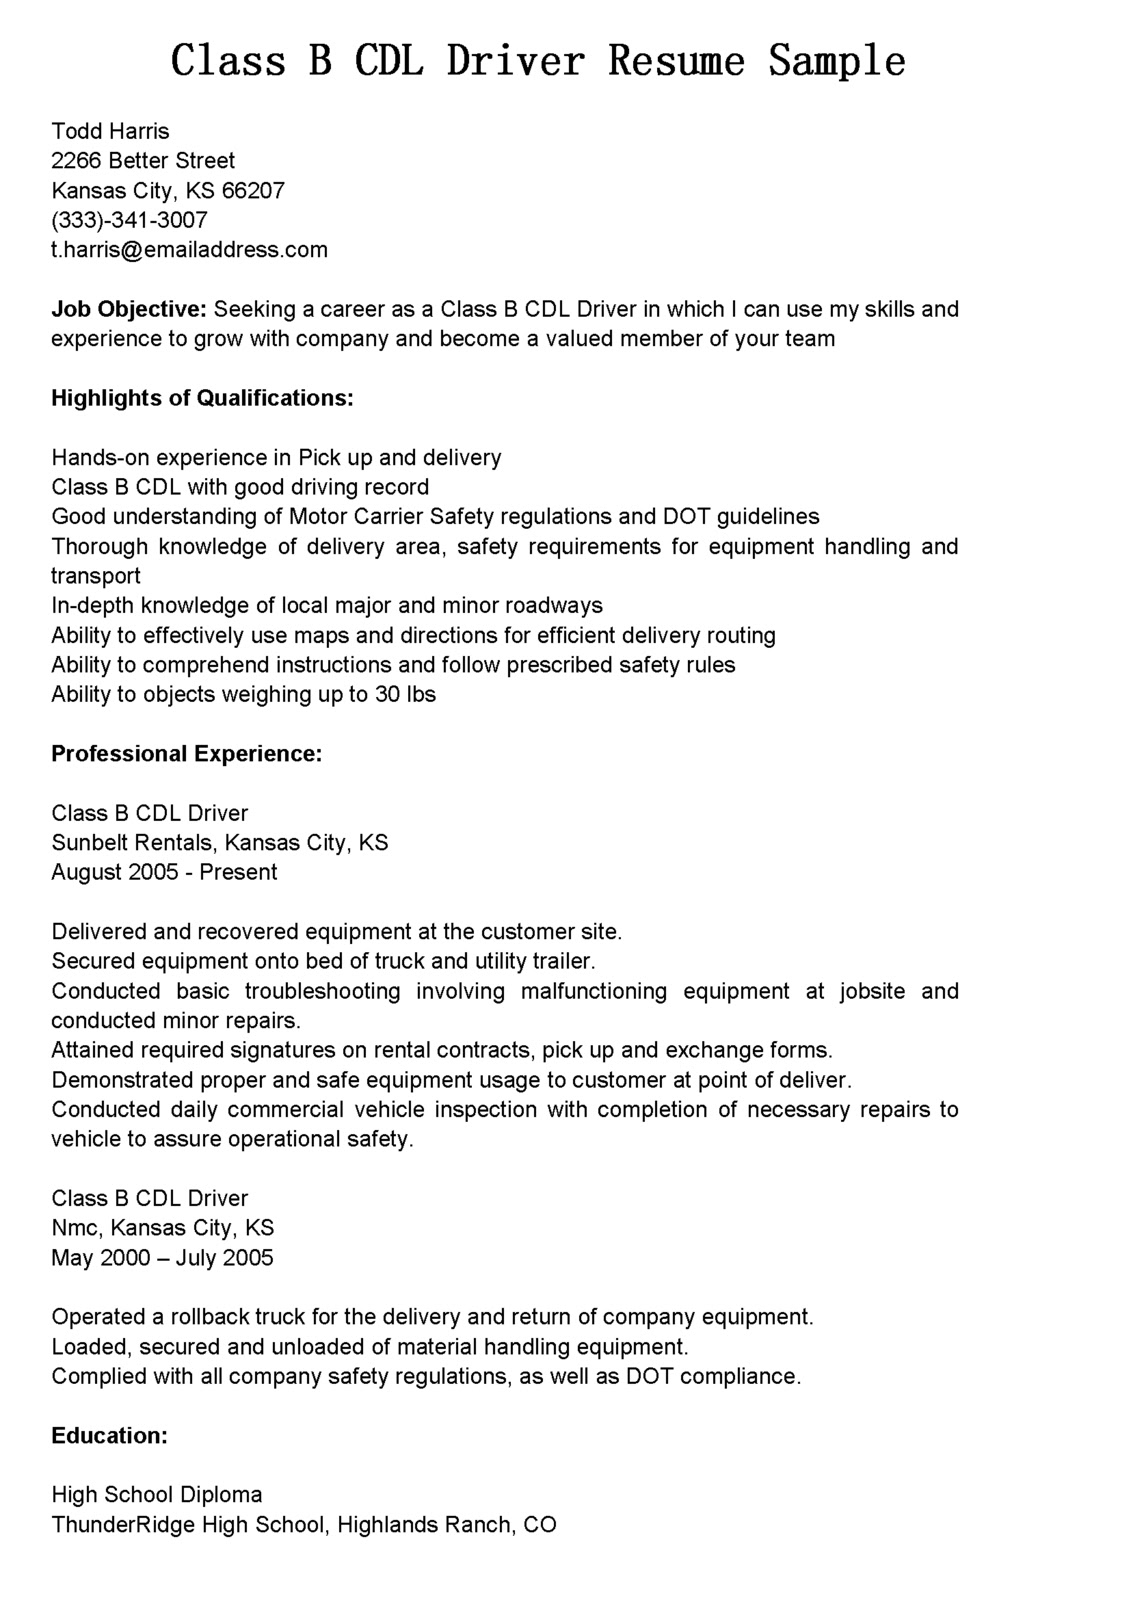 skills for truck driver resume, best truck driver resume example ...